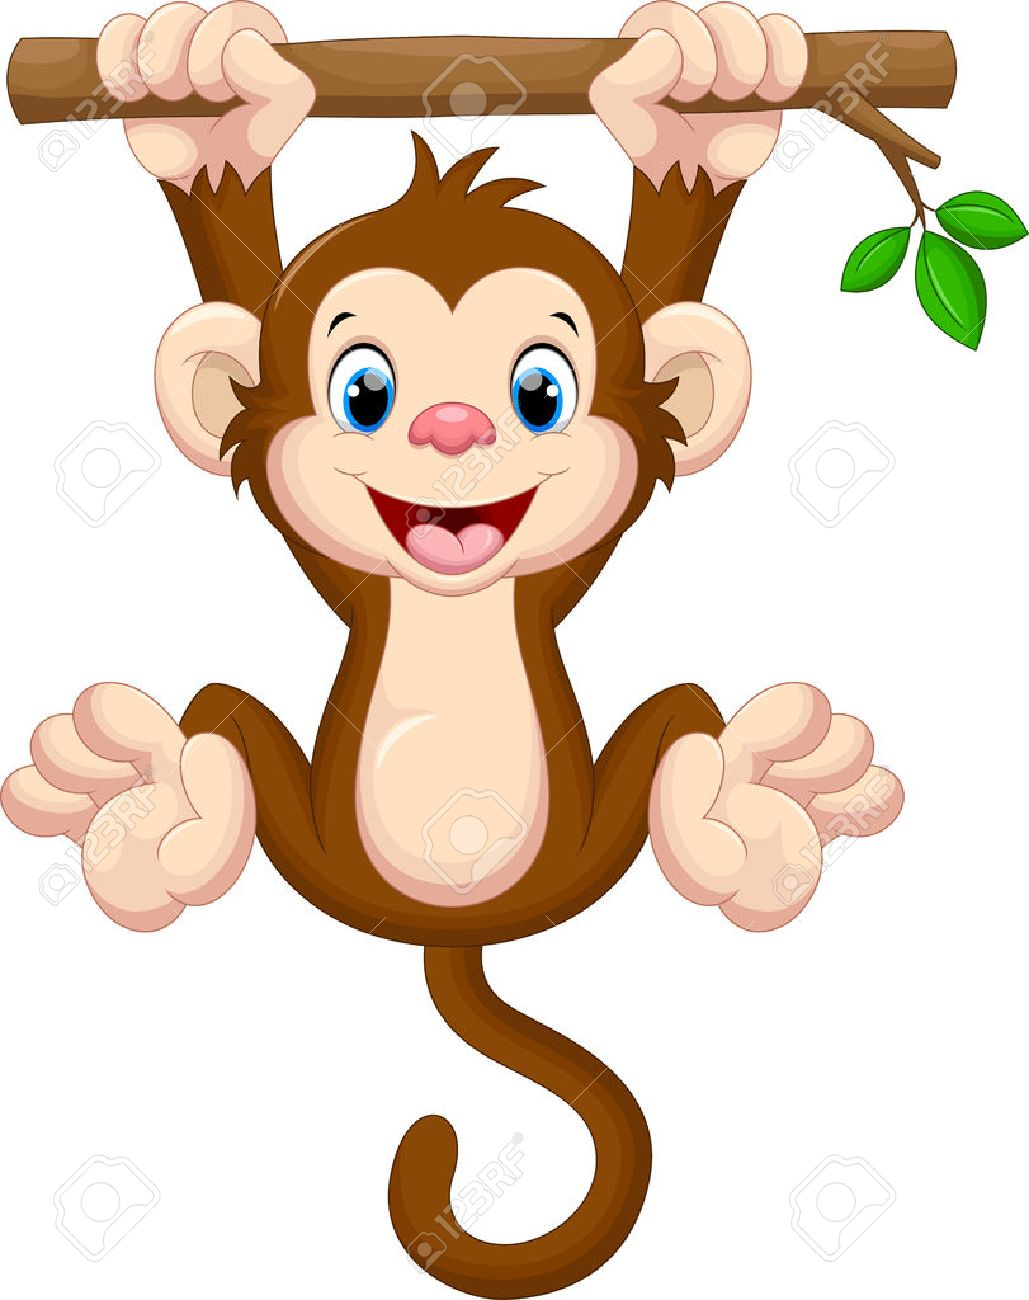 1029x1300 Cute Baby Monkey Clipart 50993708 Cute Baby Monkey Hanging On Tree